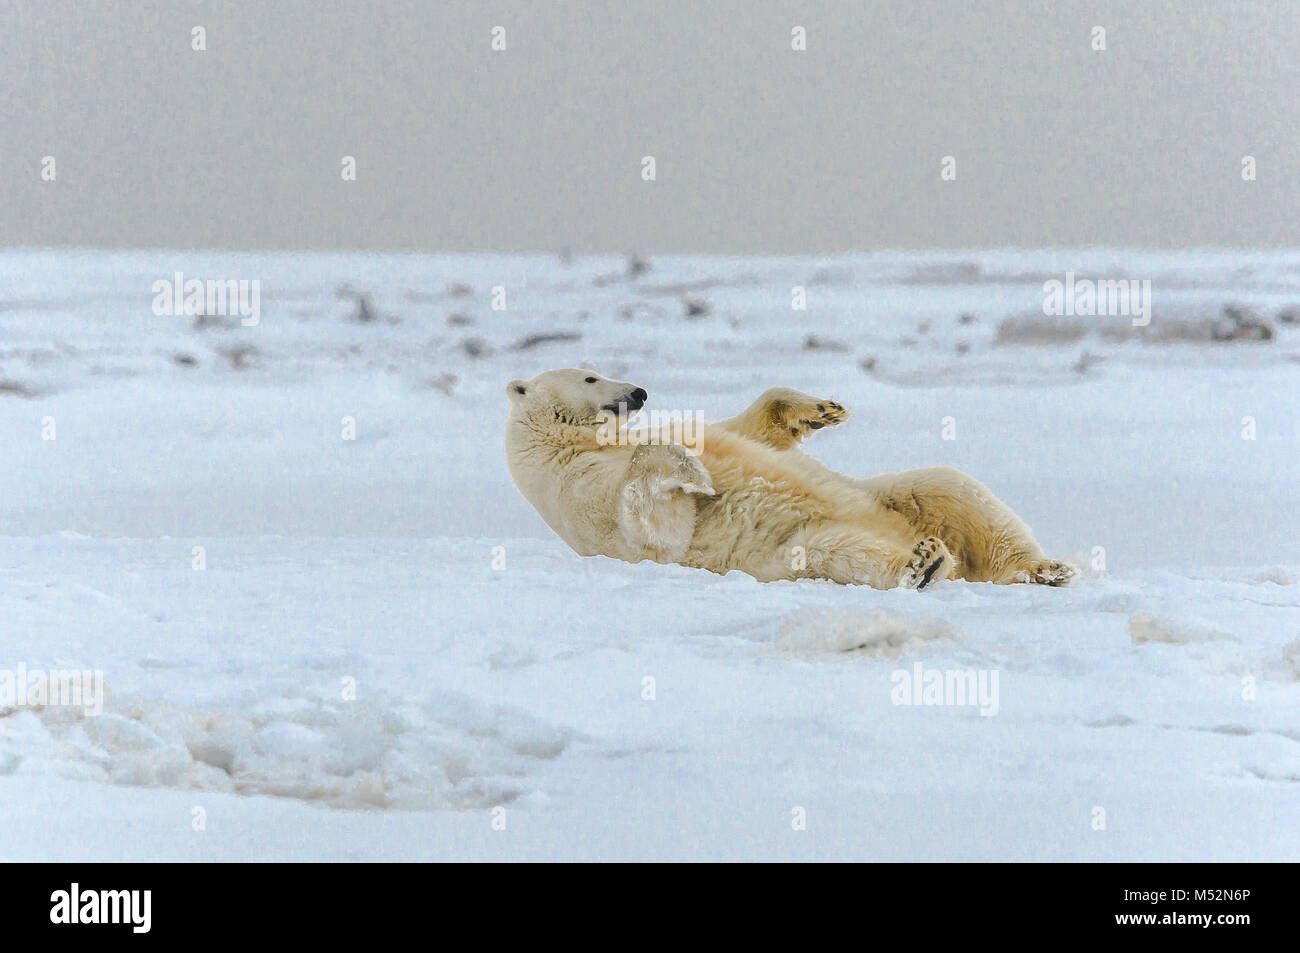 Polar bear rolling in snow near the village of Kaktovik, Barter Island, Alaska. Today, the primary conservation - Stock Image